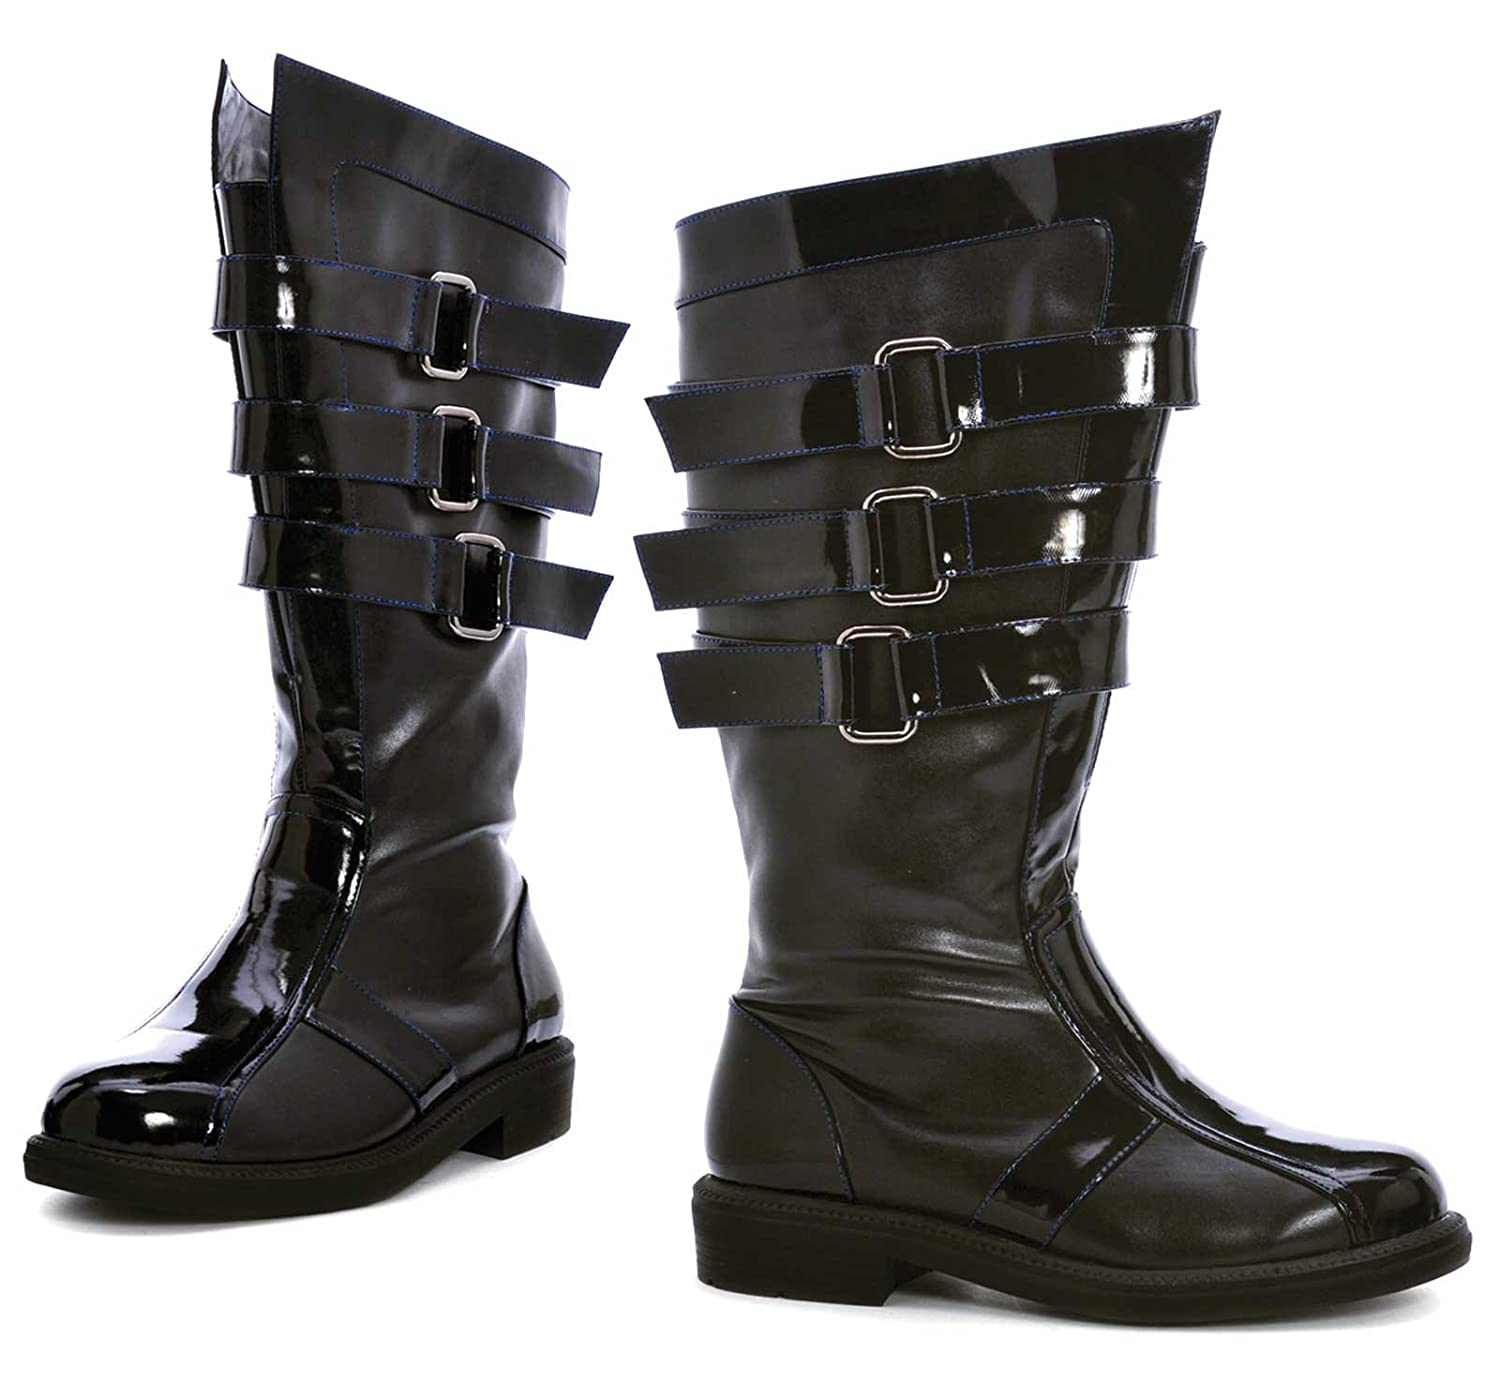 Ellie Shoes Men's Black Boot Sizes)